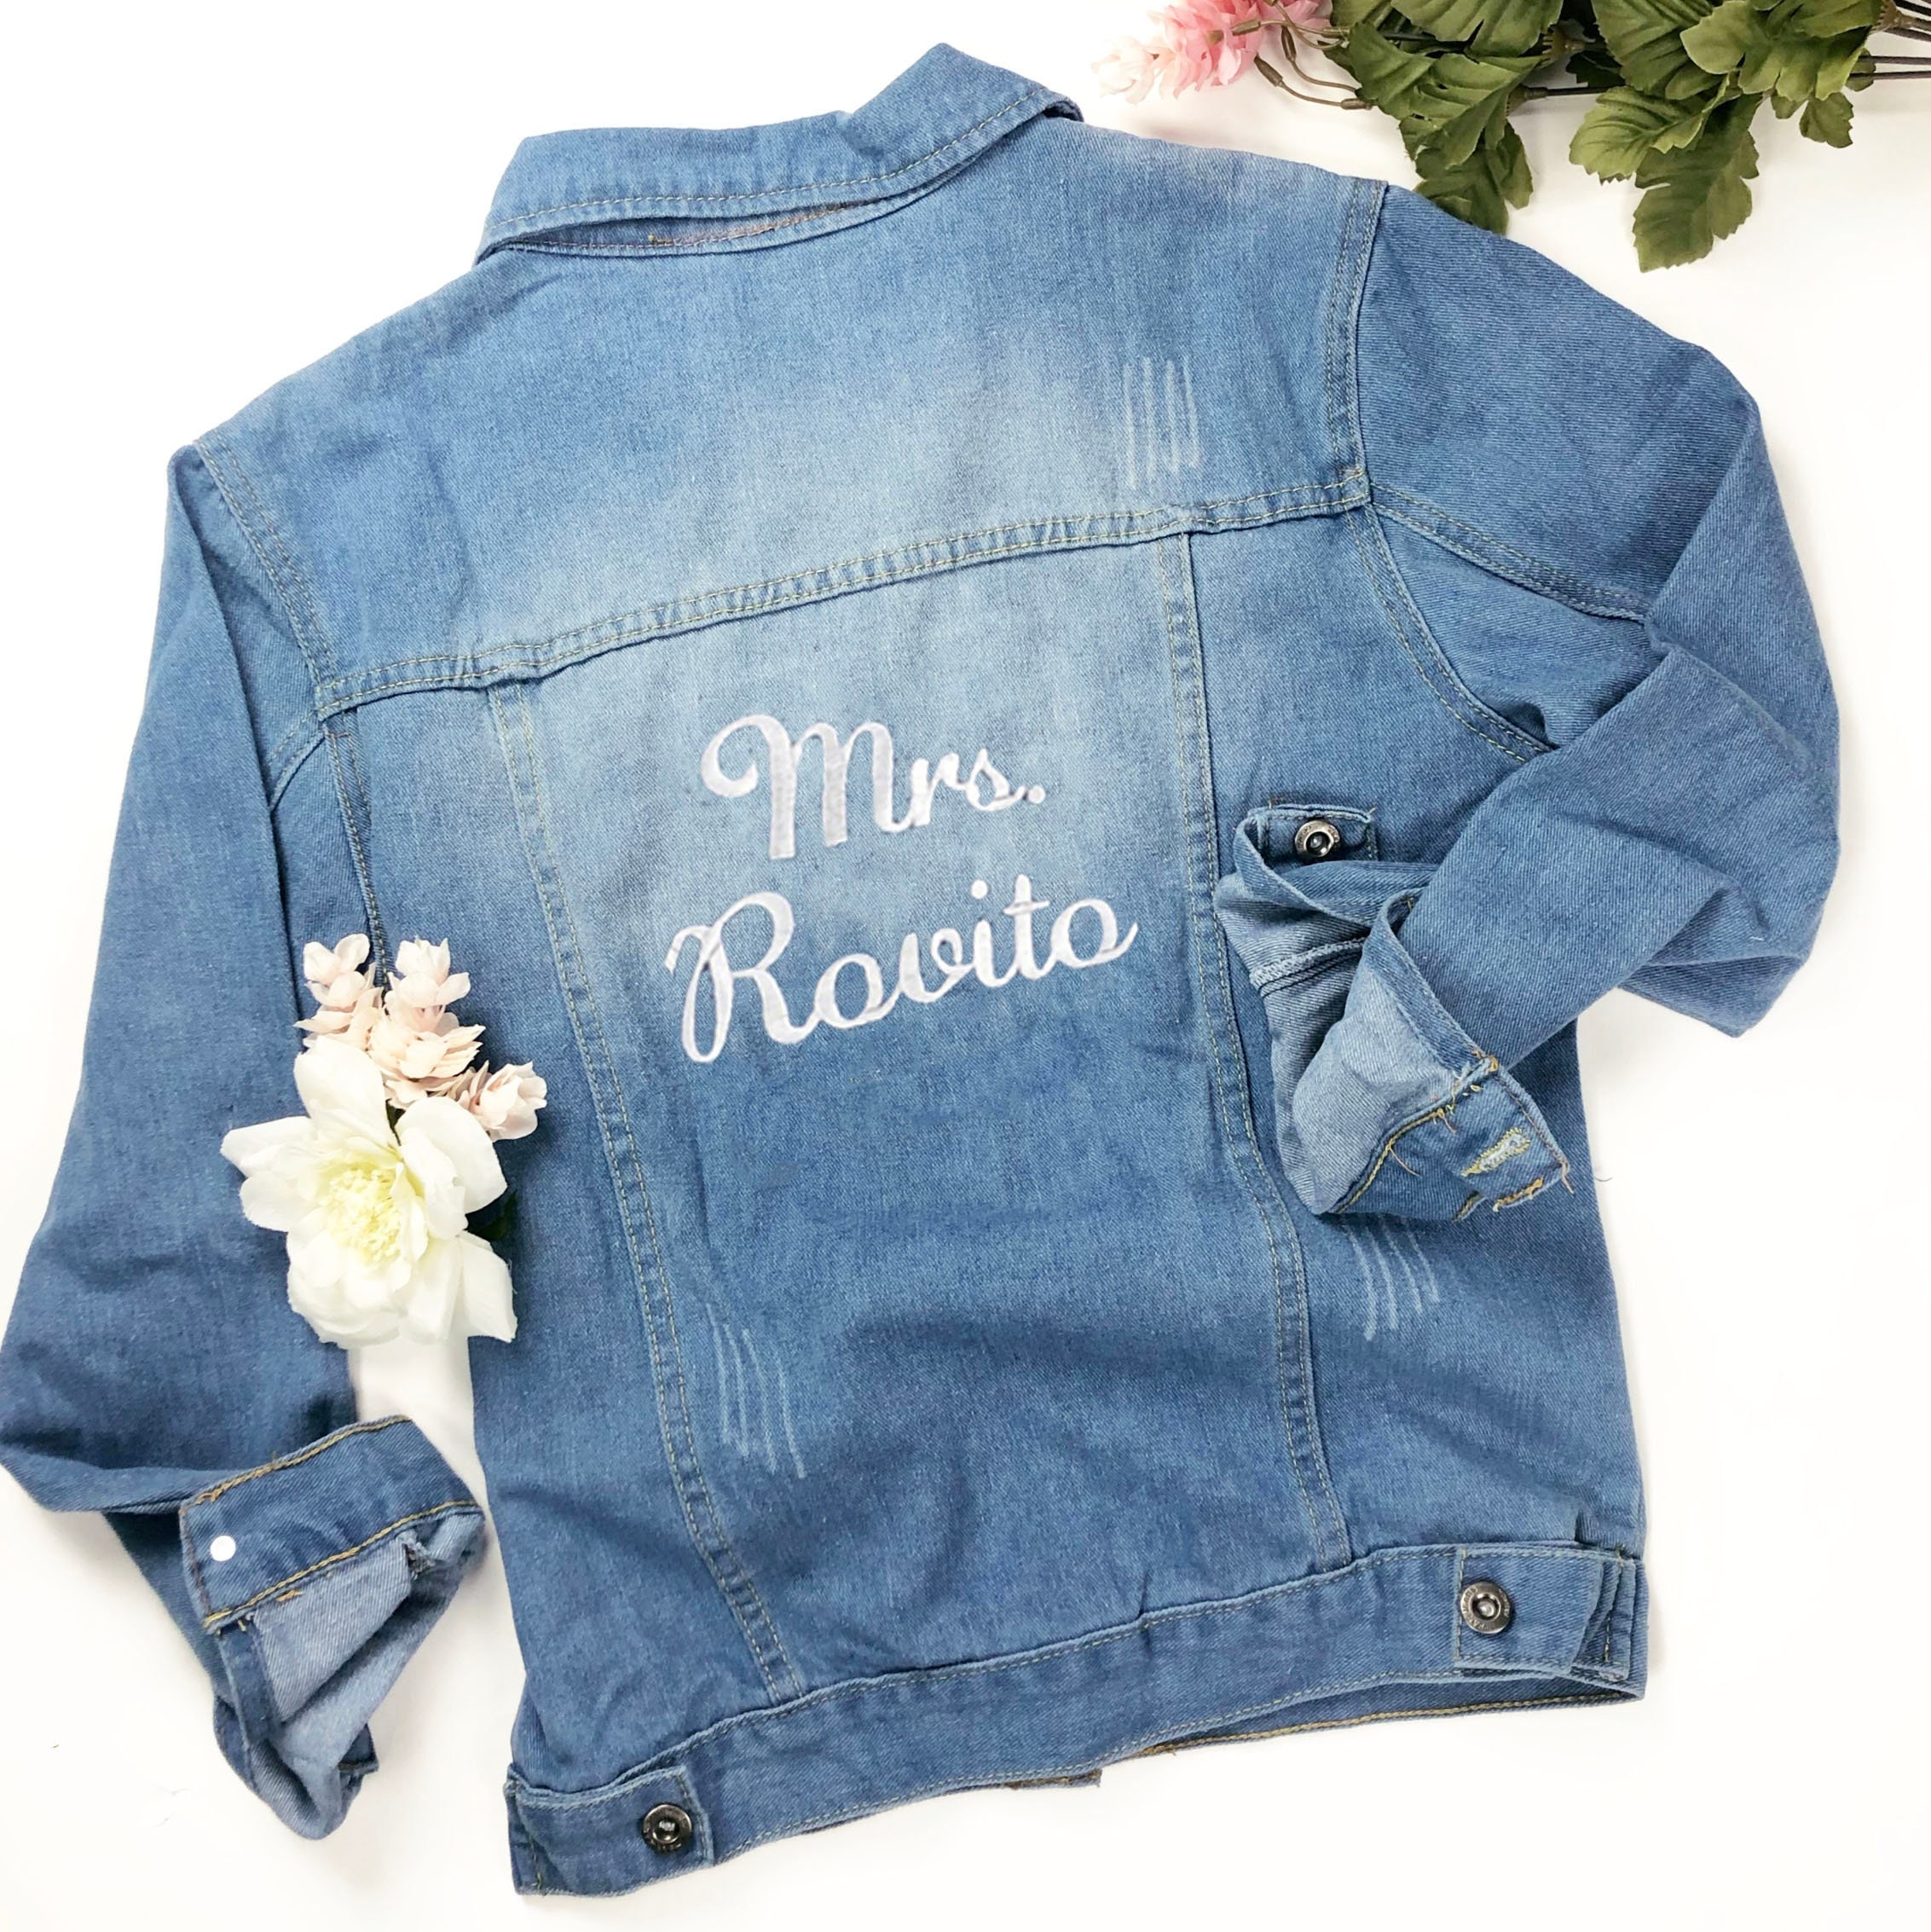 Personalized Jean Jacket Custom Denim Jacket Gift For Bride